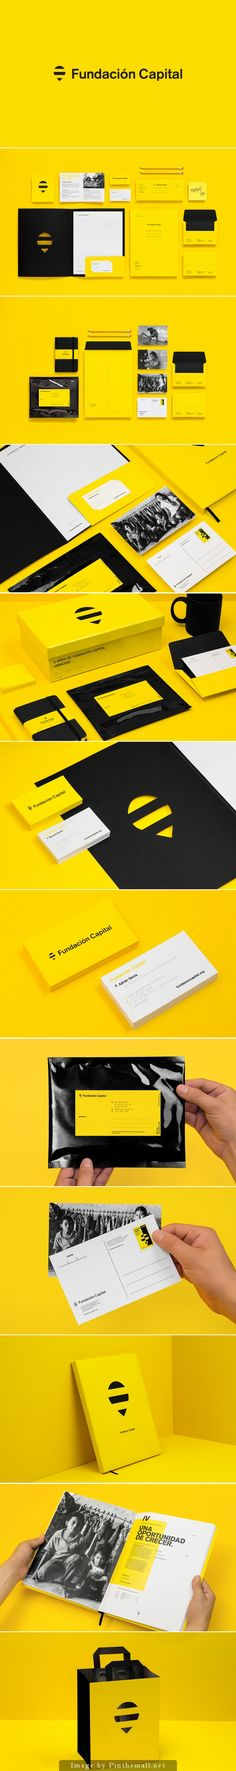 Fundación Capital - BRANDING IS NOT JUST THE LOGO, GOOD DESIGN TRASLATES INTO ALL ELEMENTS